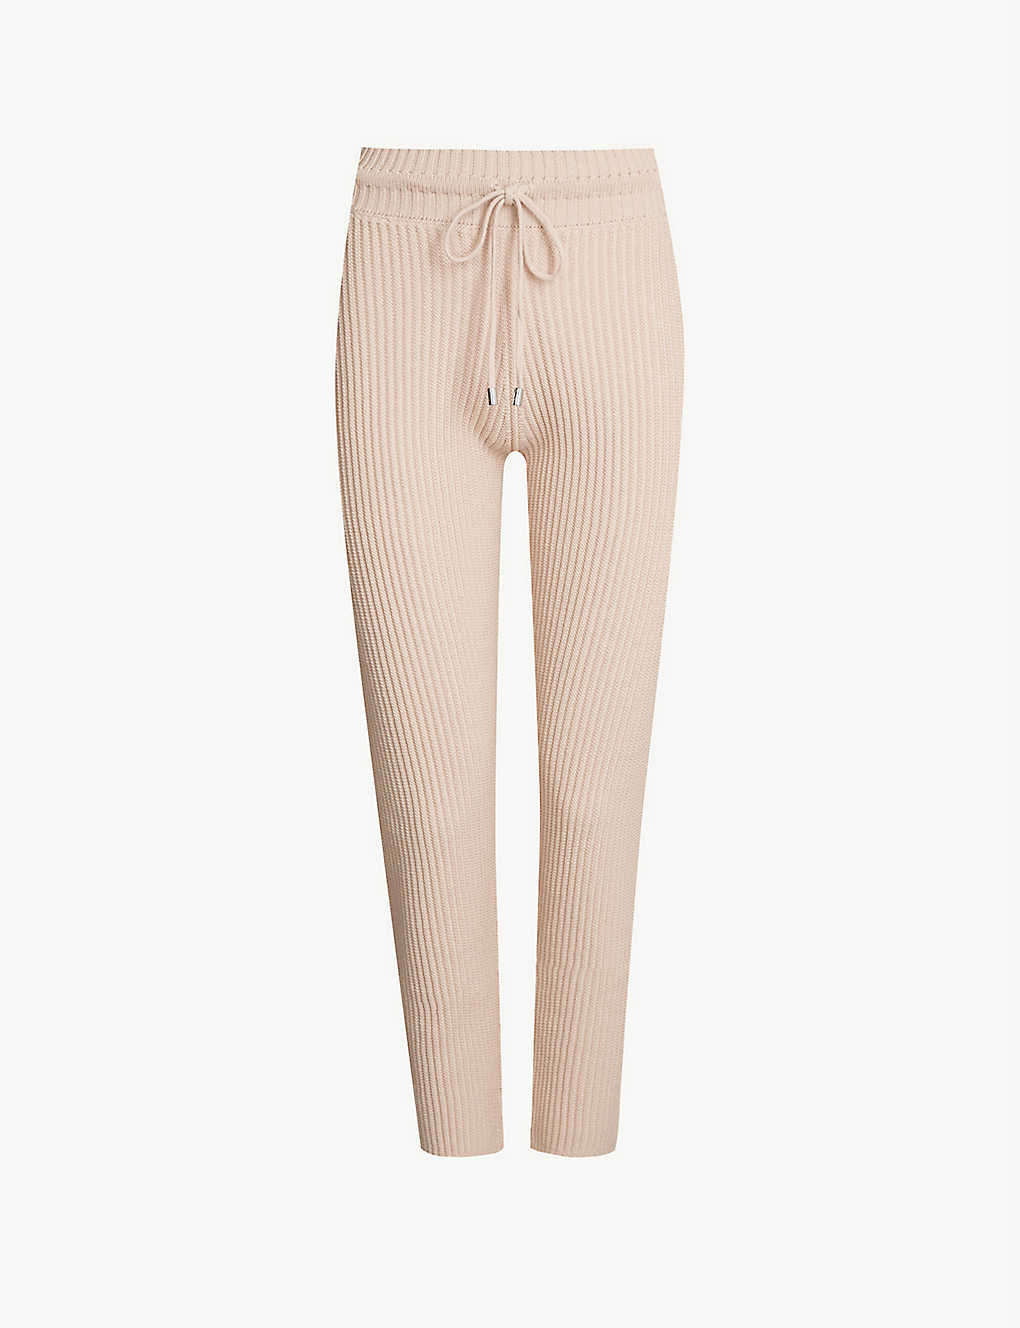 cb9dbd2d MAX MARA - Bric cable-knit wool jogging bottoms | Selfridges.com